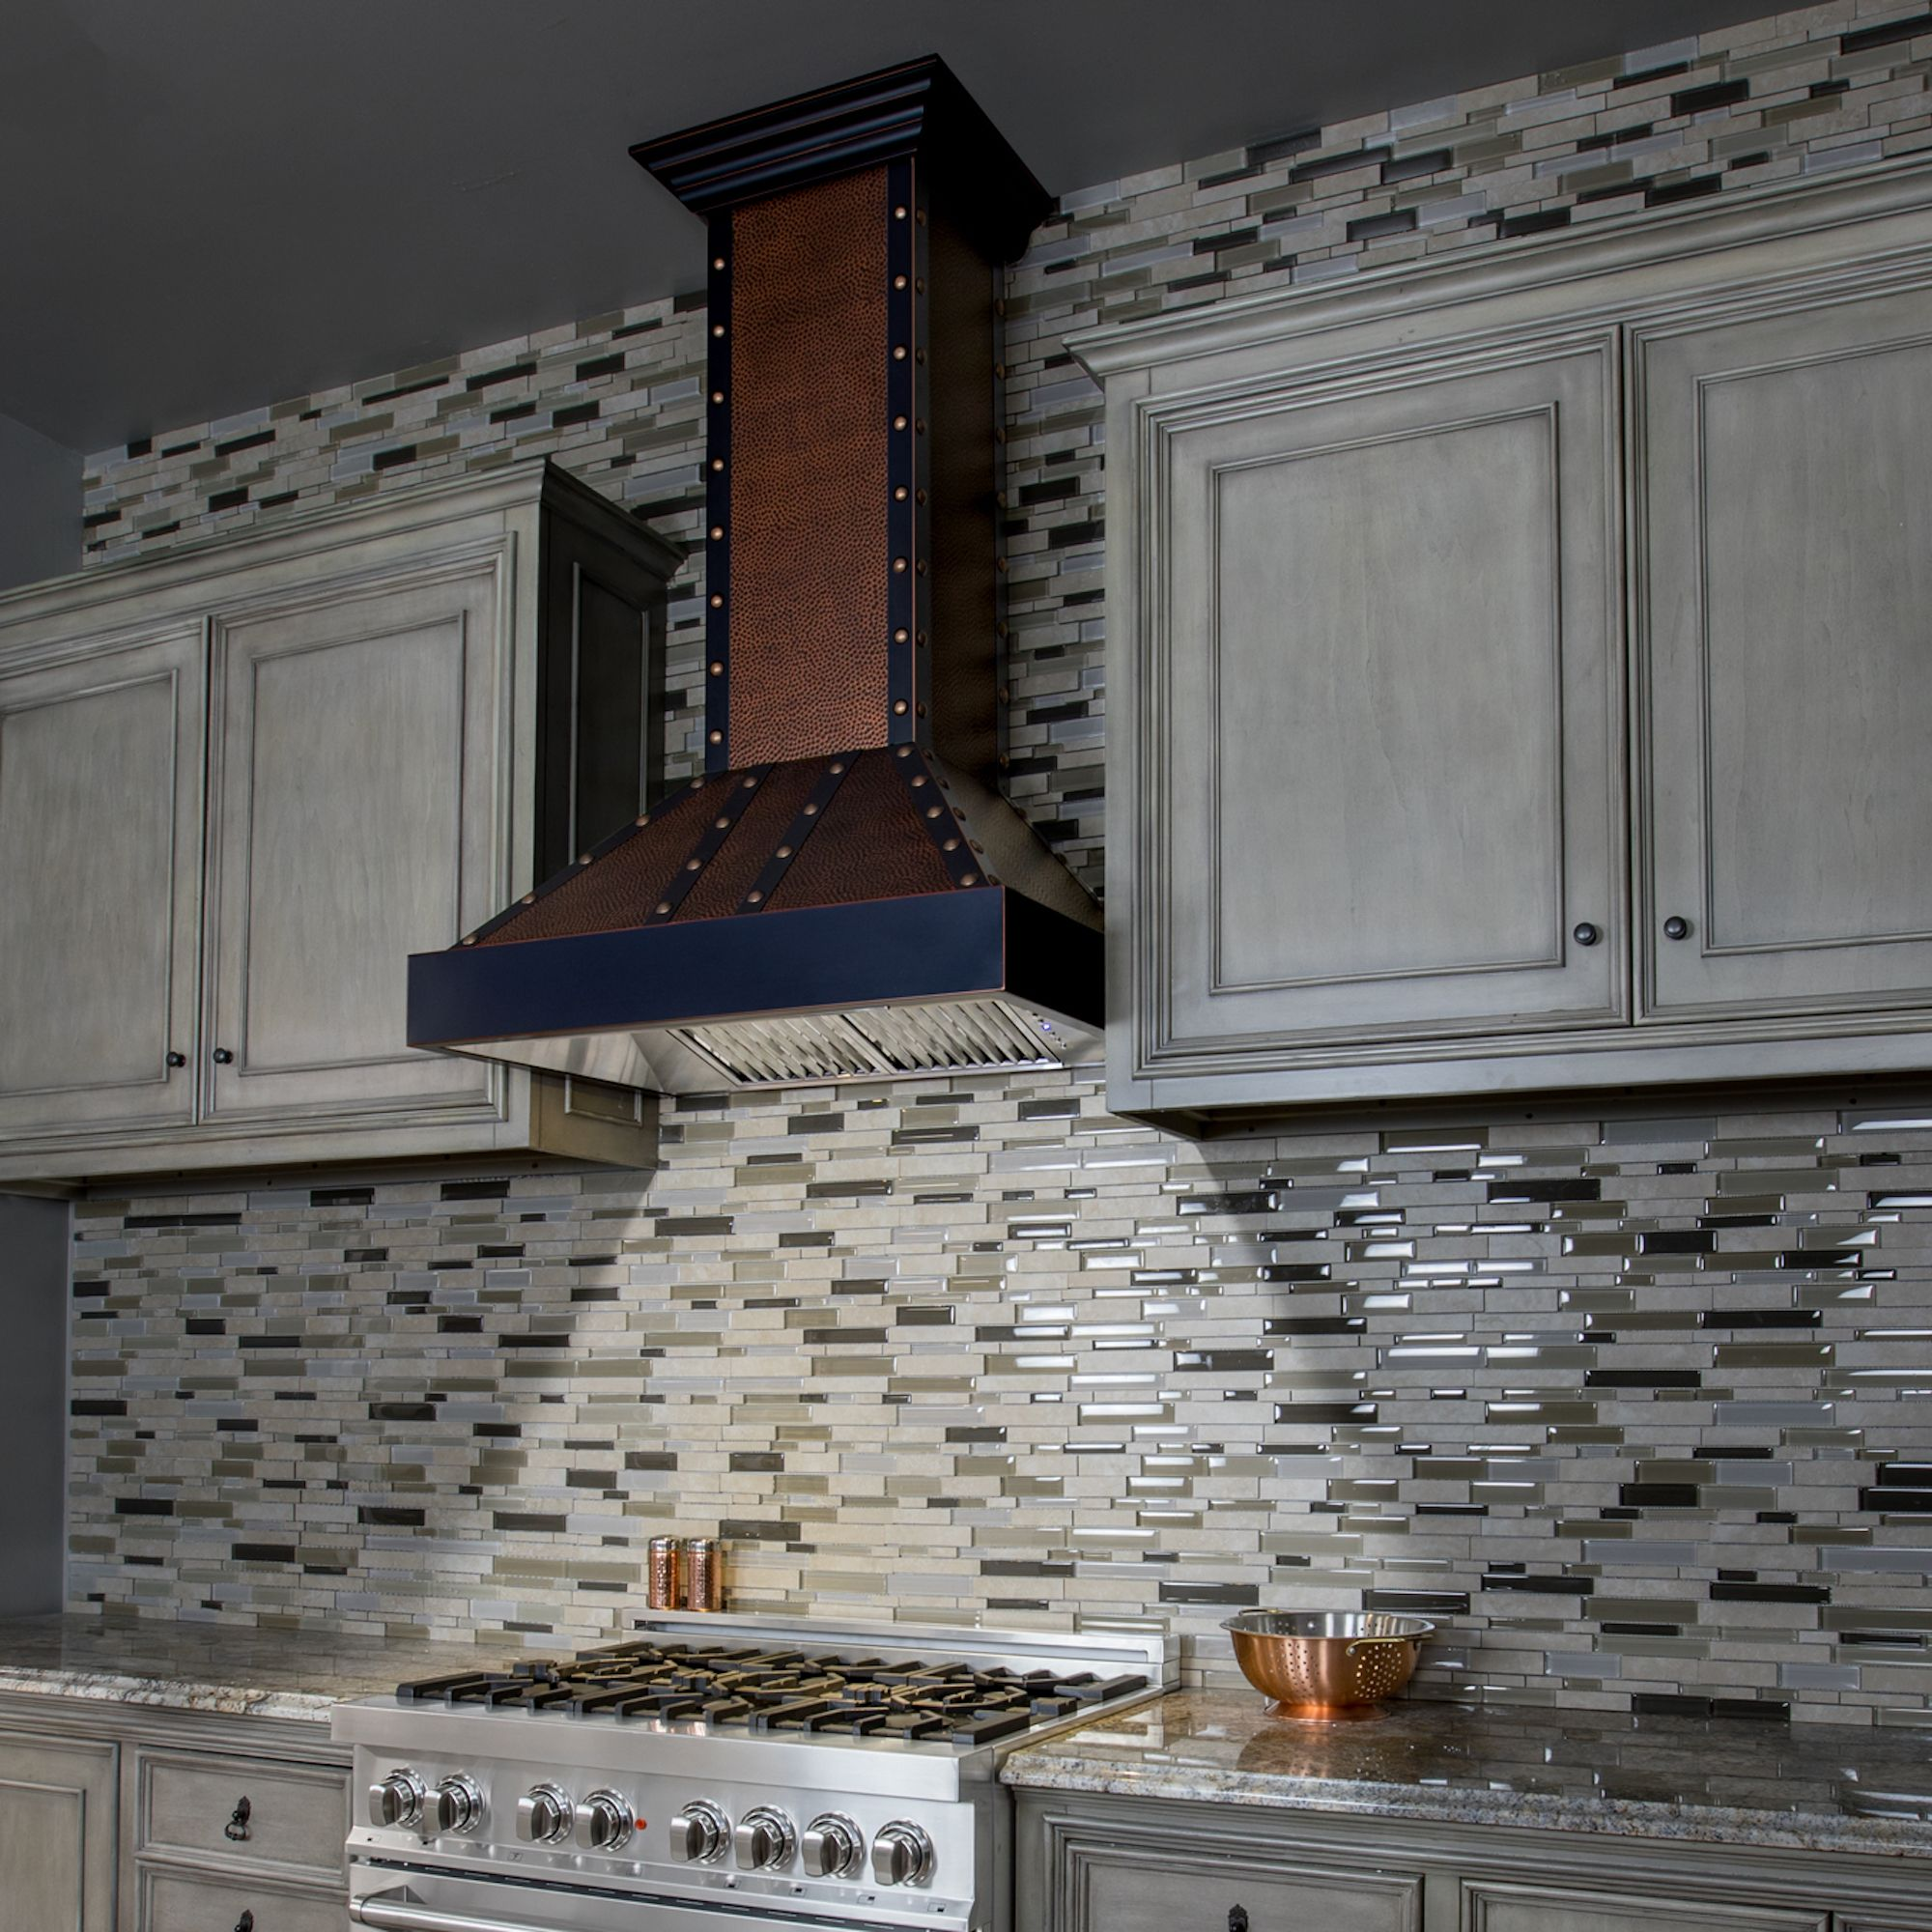 Design Trend Tuesday Accent Your Space With Hand Hammered Copper The Popularity Of Hand Hammered Copper Wall Mount Range Hood Copper Range Hood Range Hood